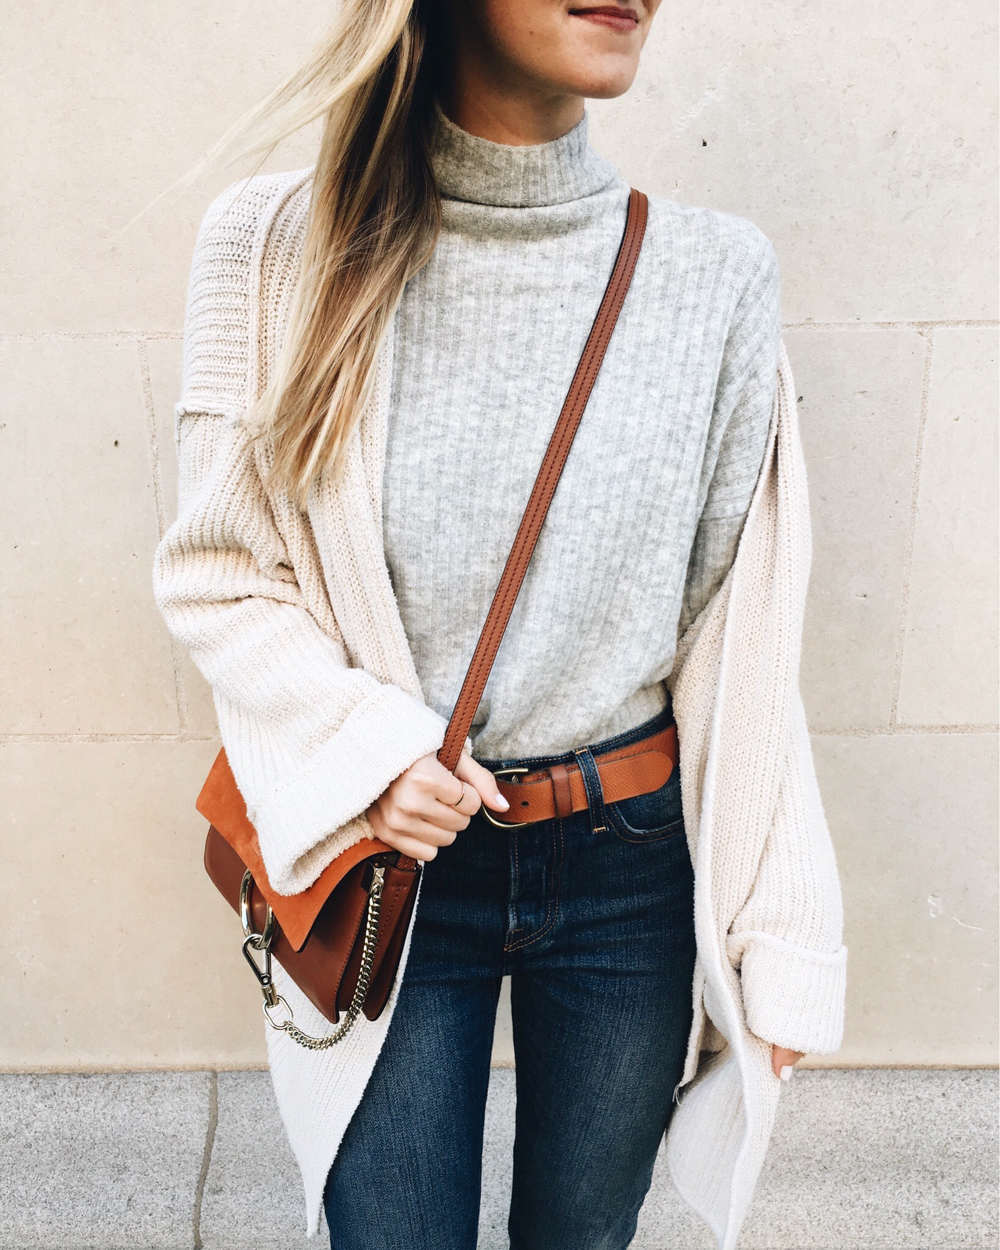 livvyland-blog-olivia-watson-chloe-faye-small-handbag-brown-free-people-oversize-cozy-cardigan